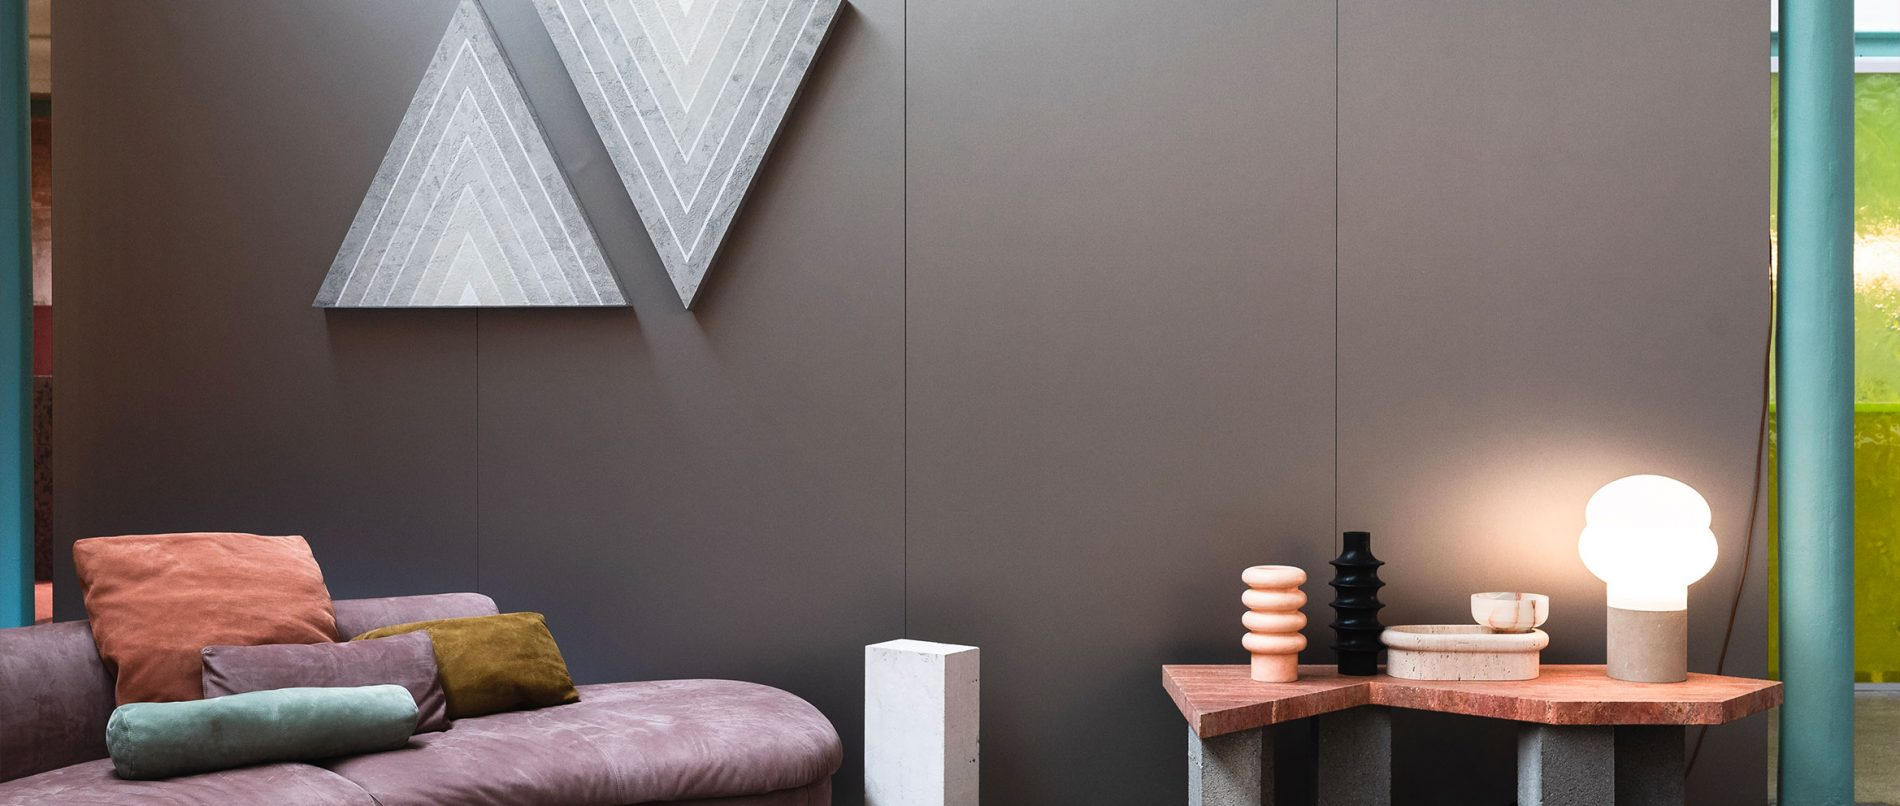 Be Inspired And Updated With The Latest Trends In Interior And Design